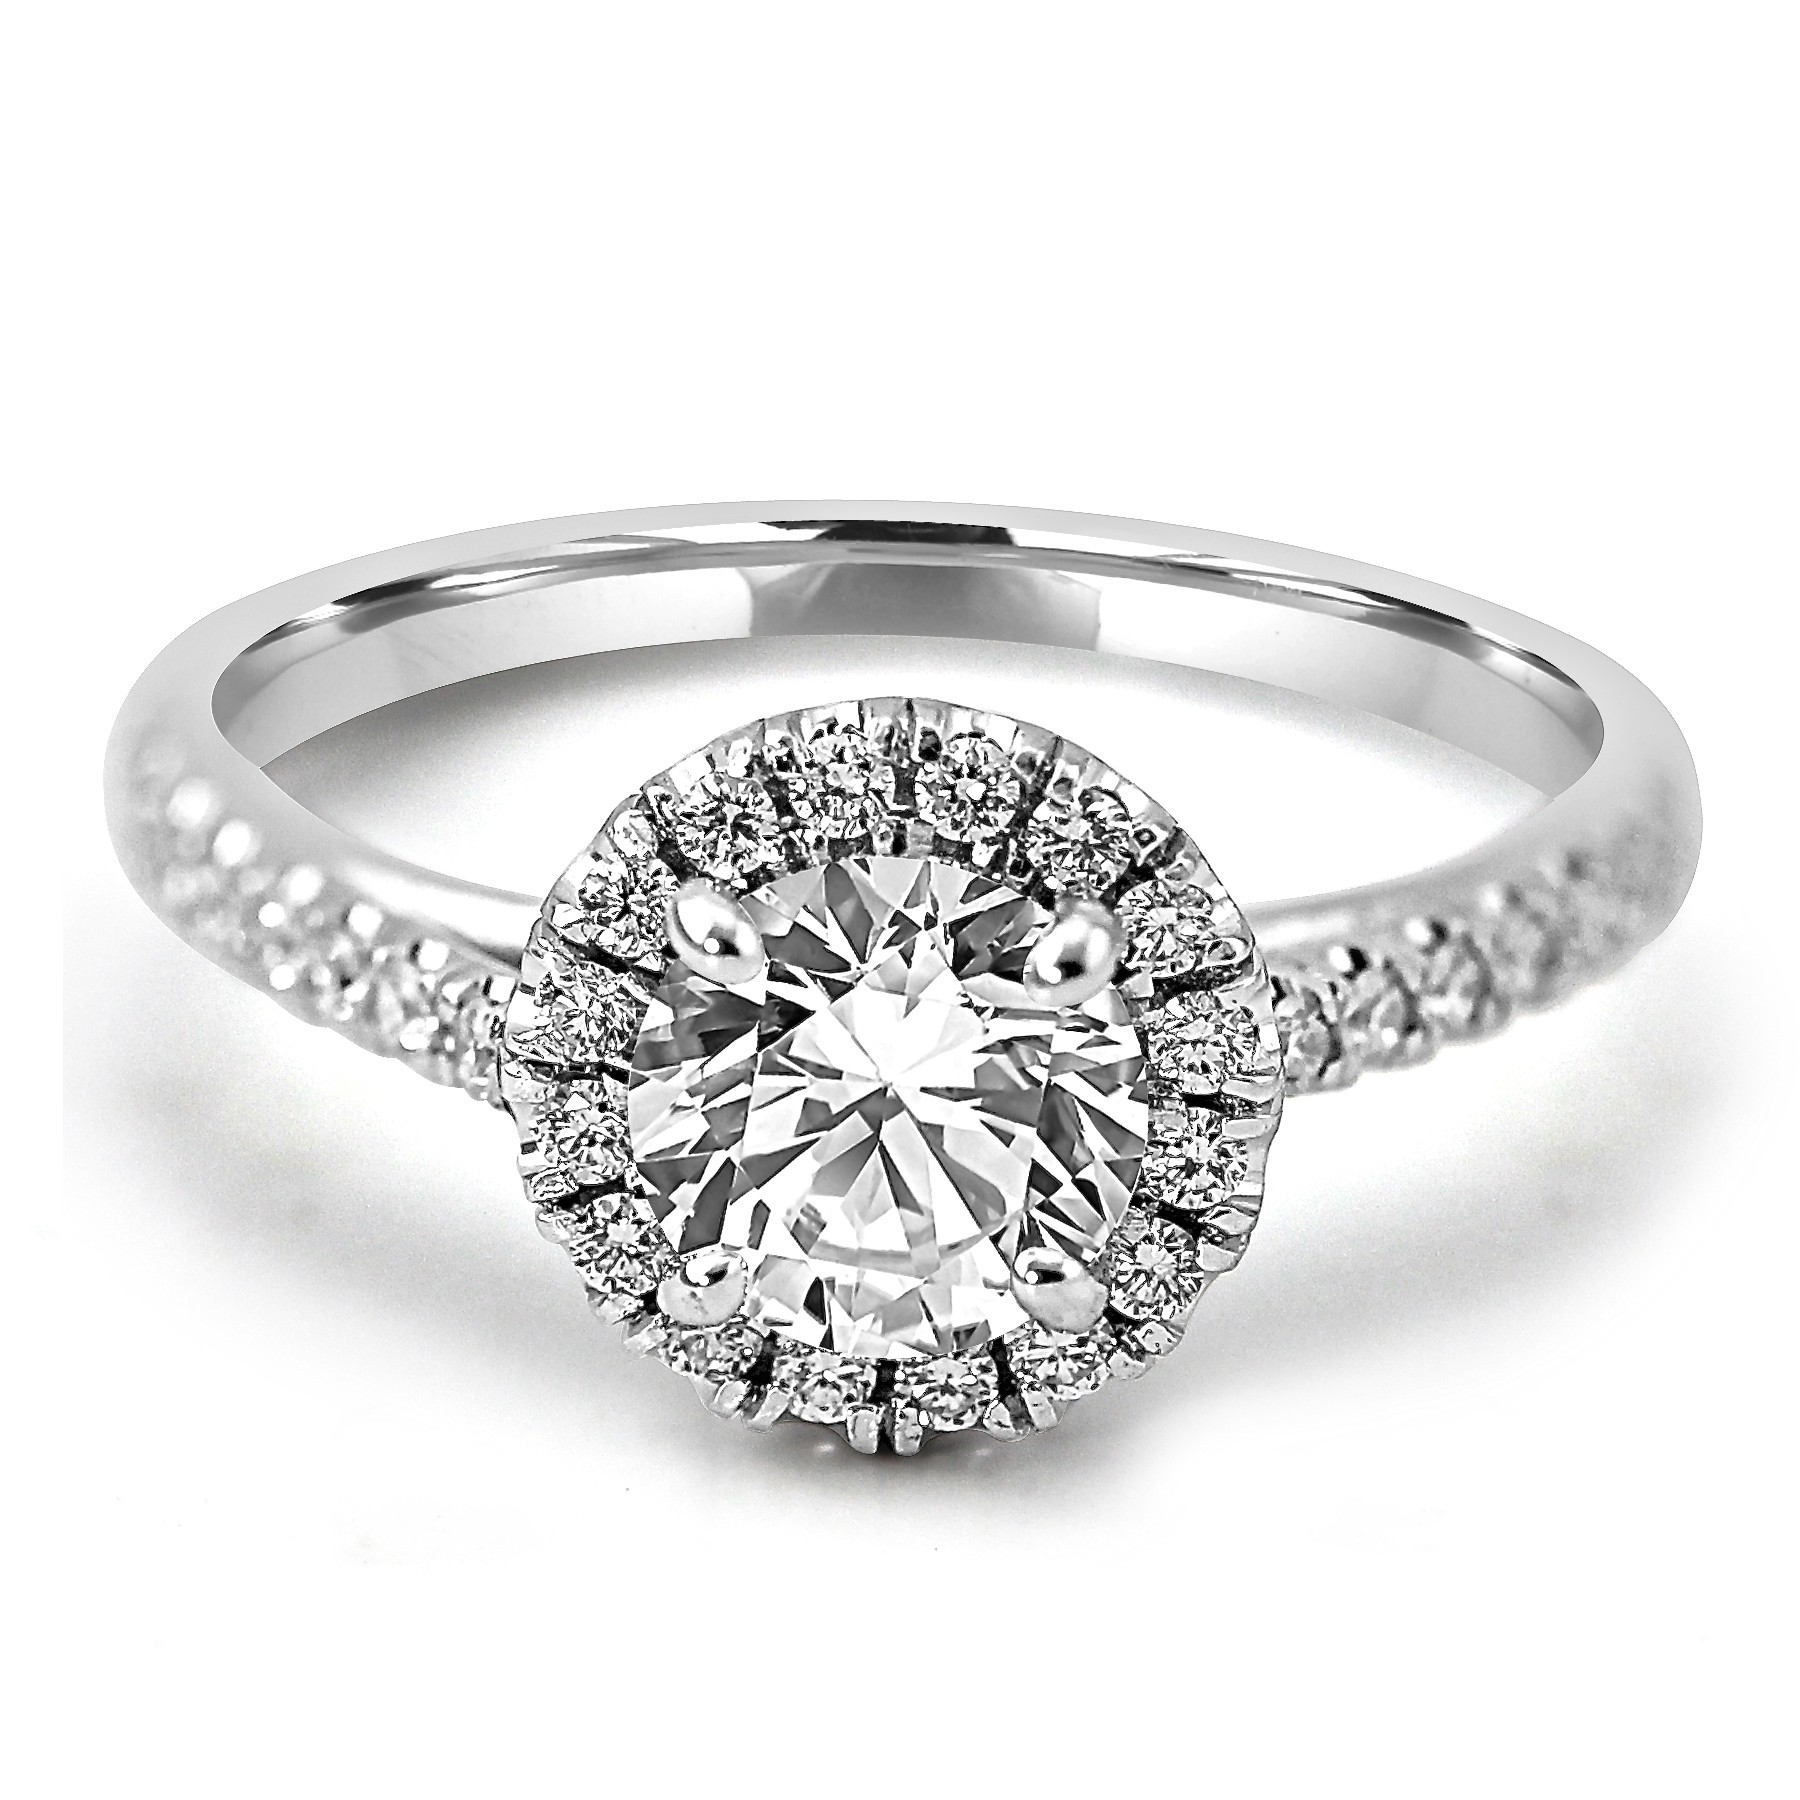 designs copy detailing classic of vine rings silverscape ring products engagement milgrain round center